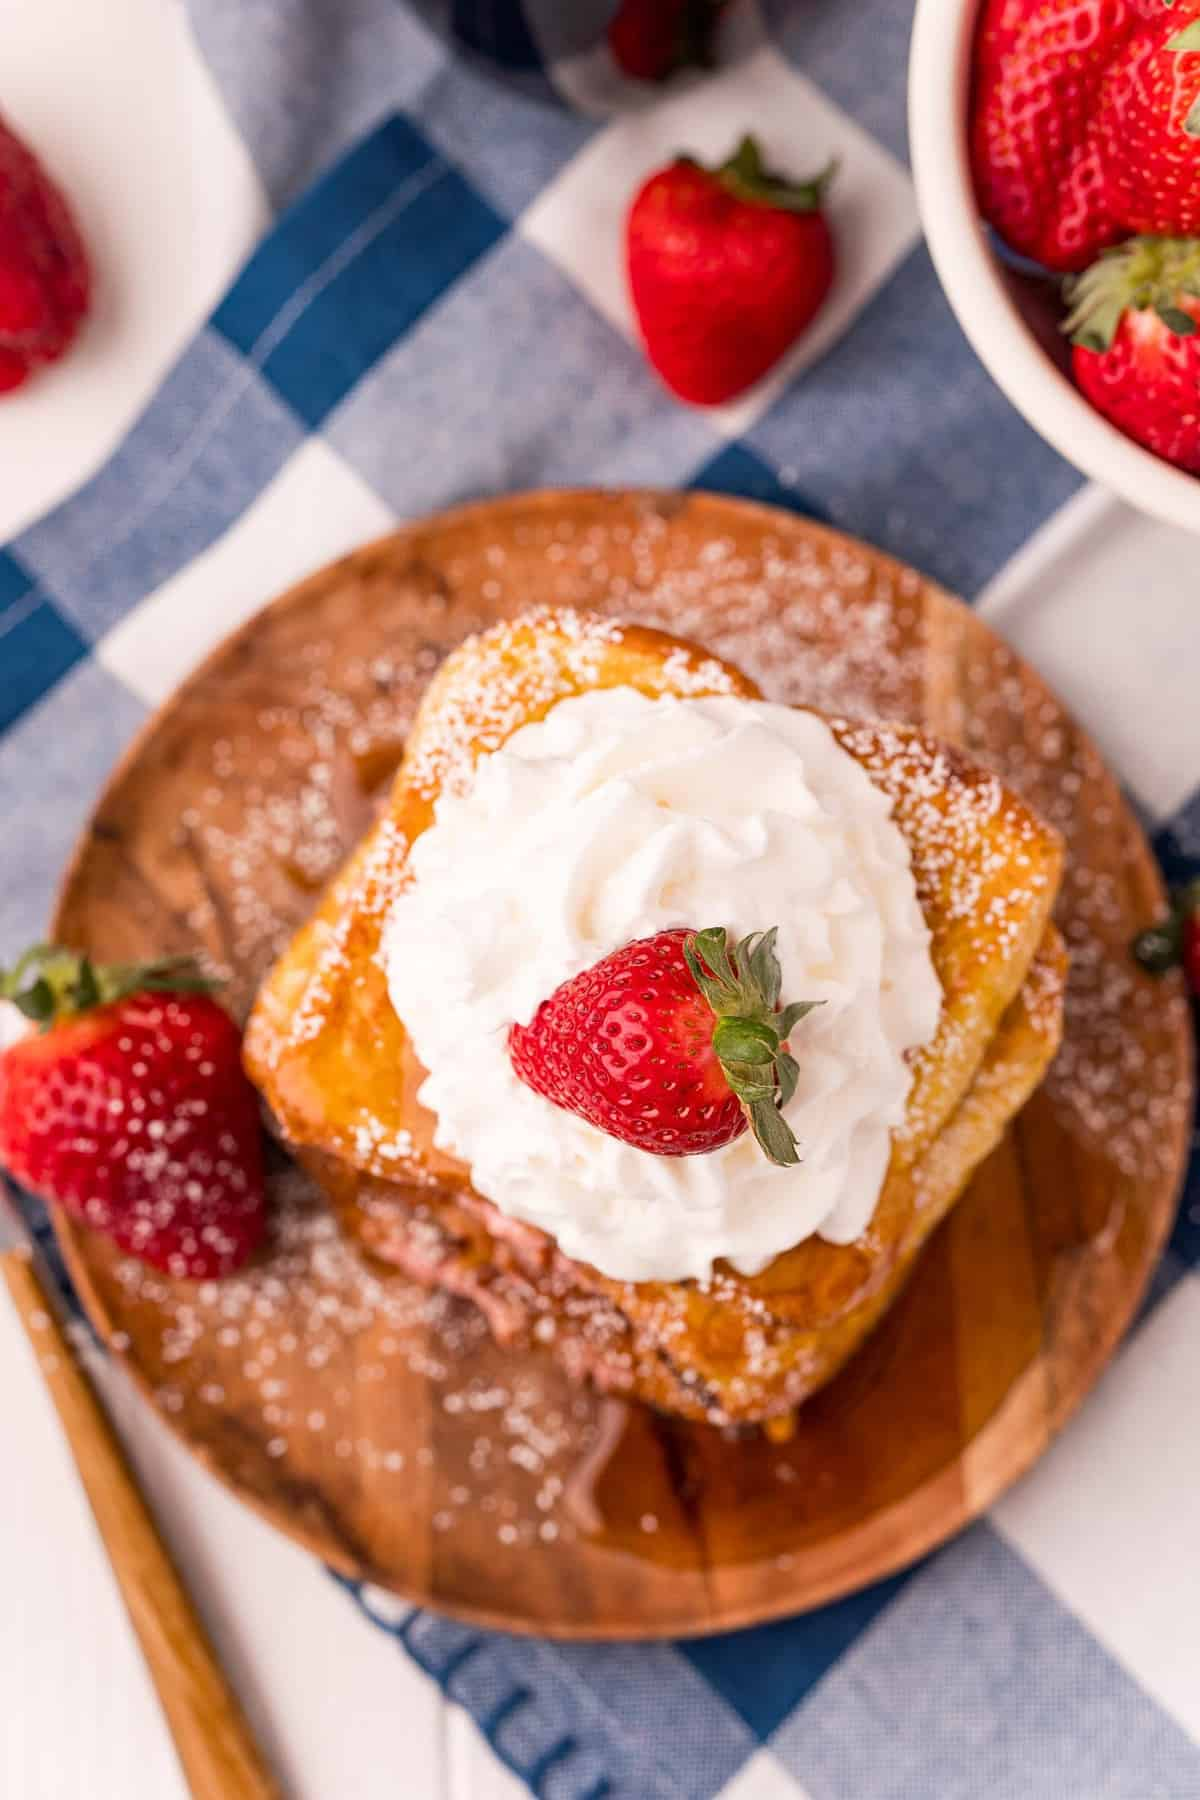 Overhead view of strawberry cream cheese french toast with whipped cream.